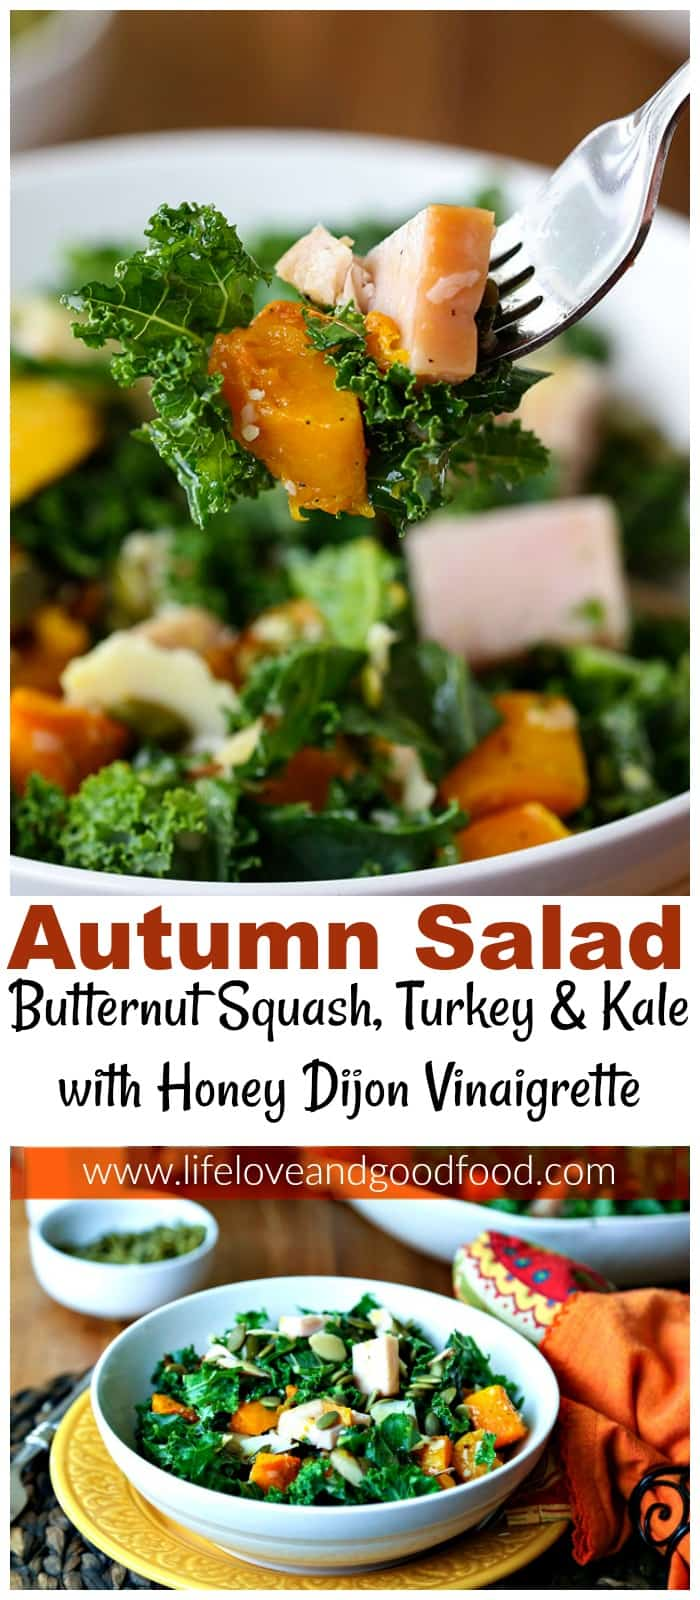 Autumn Salad with Butternut Squash, Turkey, and Kale with Honey Dijon Vinaigrette | Life, Love, and Good Food